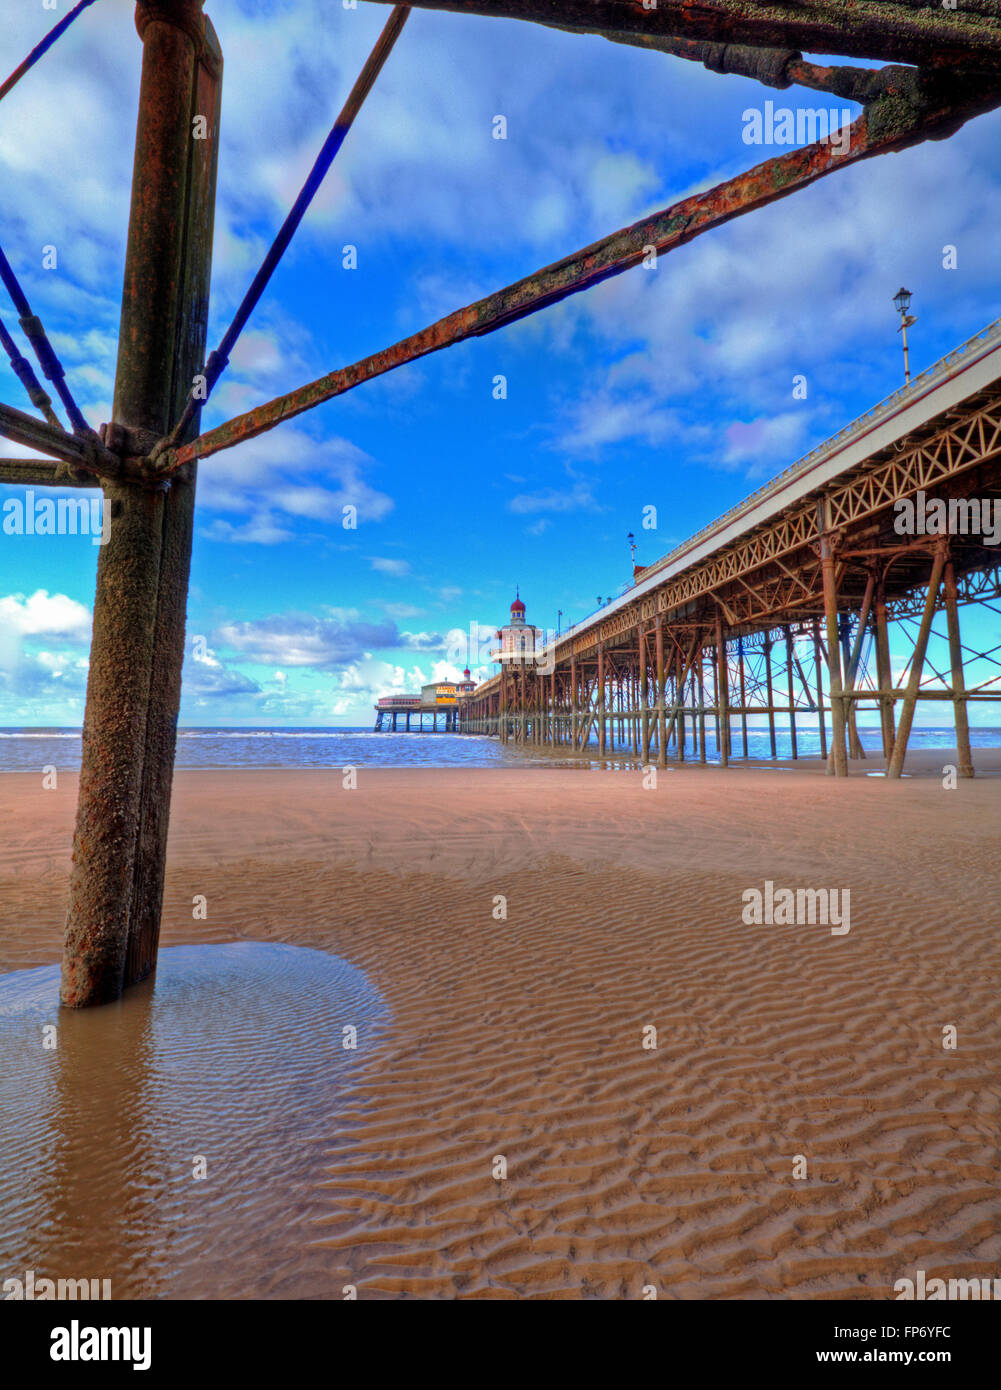 A view along Blackpool's North Pier from the southerly wing. - Stock Image